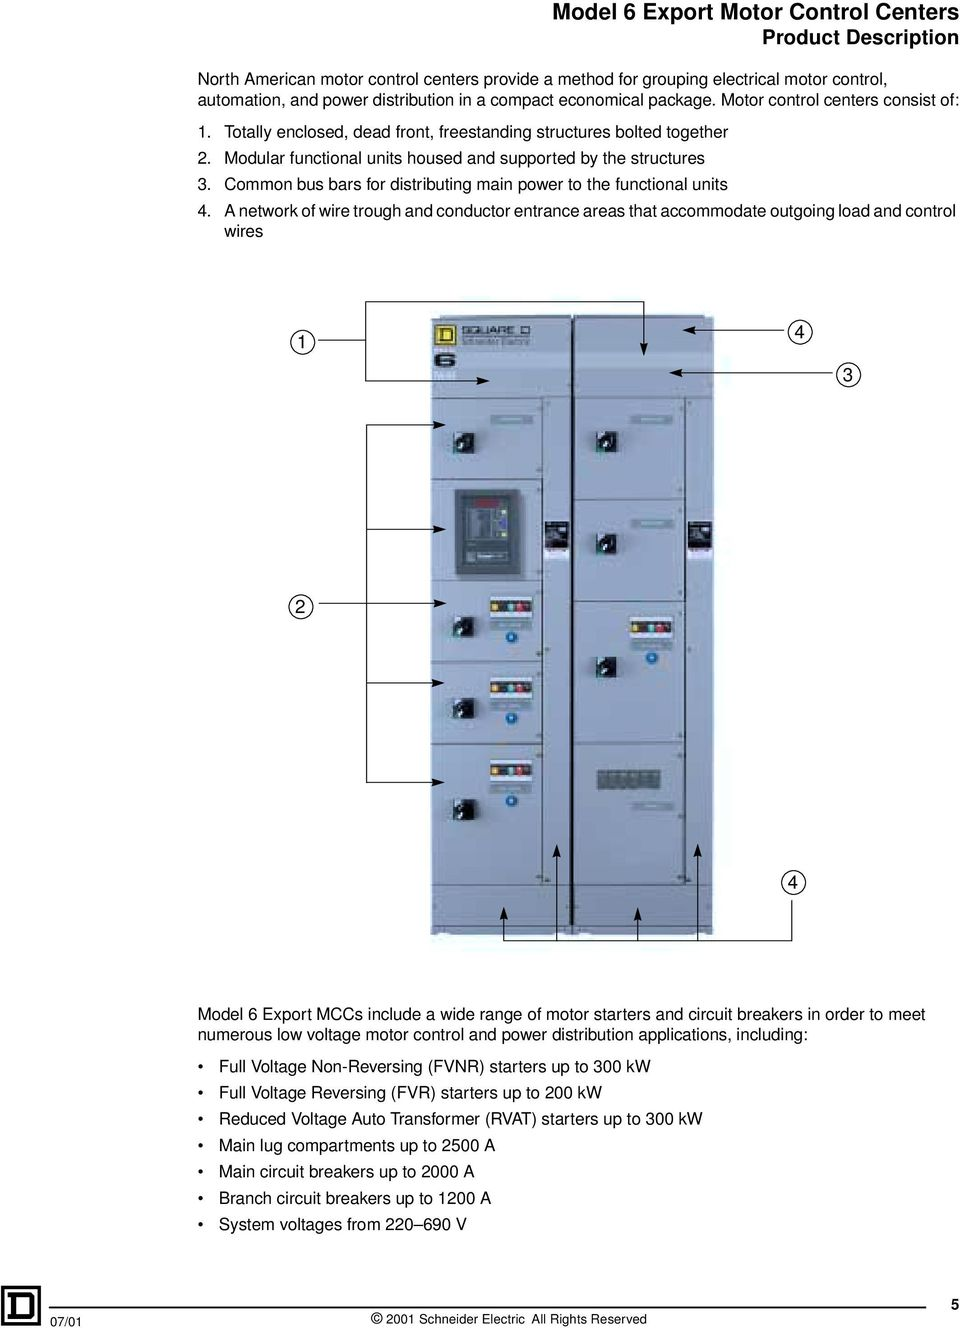 Model 6 Export Motor Control Centers Pdf Wiring Diagram Also Center Common Bus Bars For Distributing Main Power To The Functional Units 4